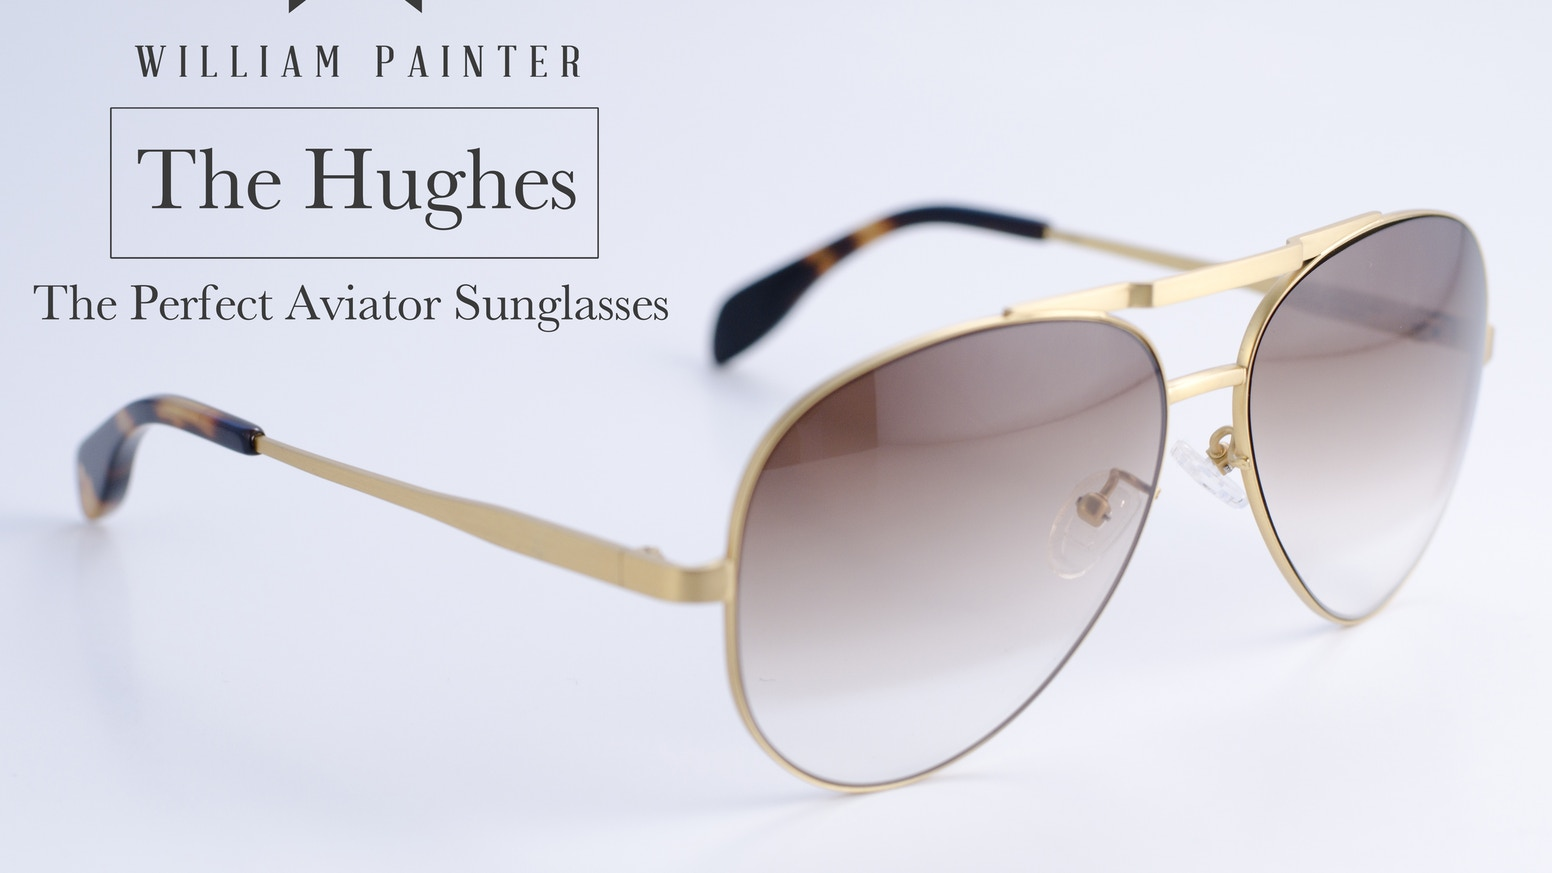 The Perfect Aviator Sunglasses: Titanium, Polarized, Perfectly Balanced, Strong, Lightweight, and Extremely Durable.